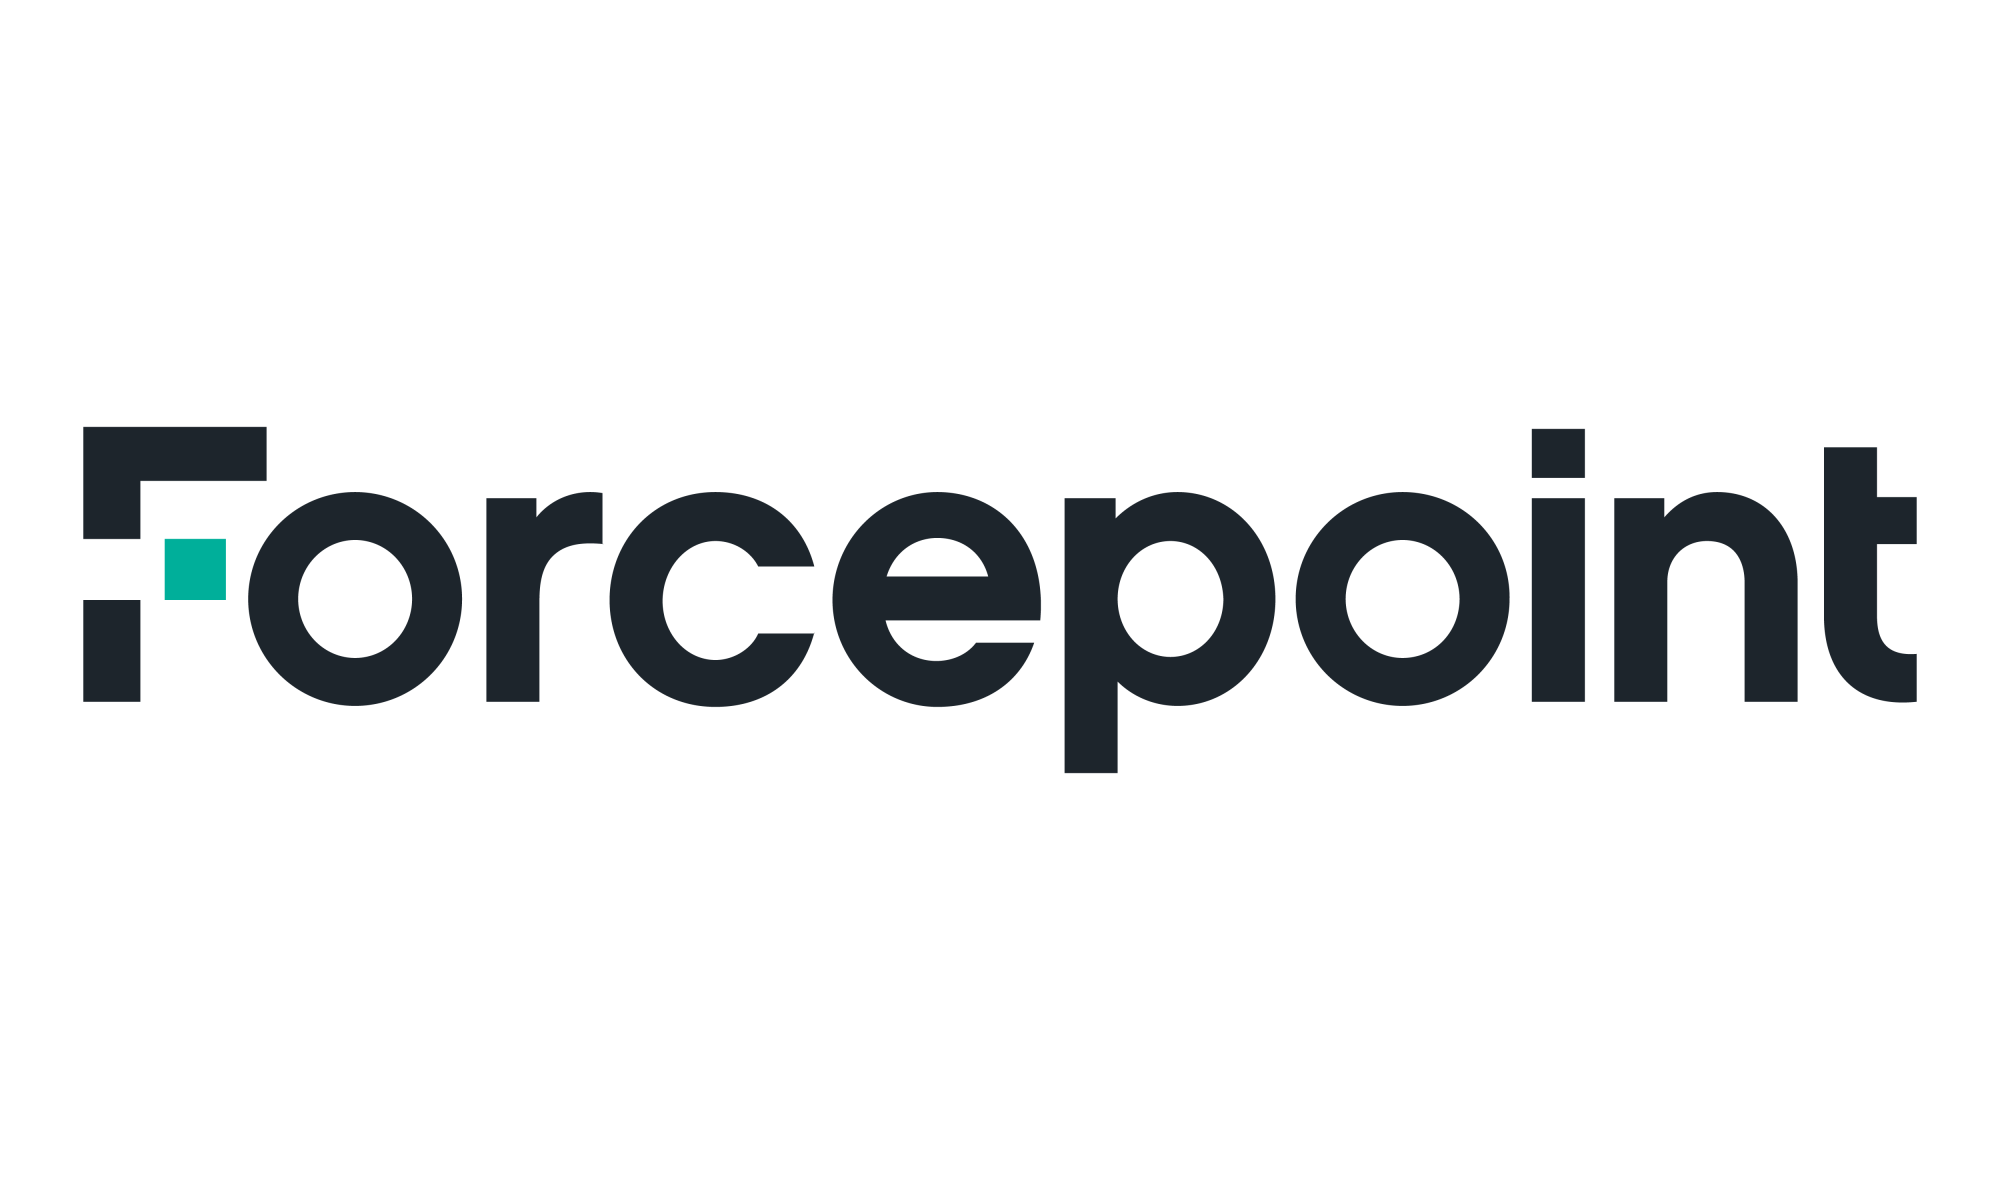 Forcepoint Software Engineering Internship - Summer 2020 1 Forcepoint Software Engineering Internship - Summer 2020